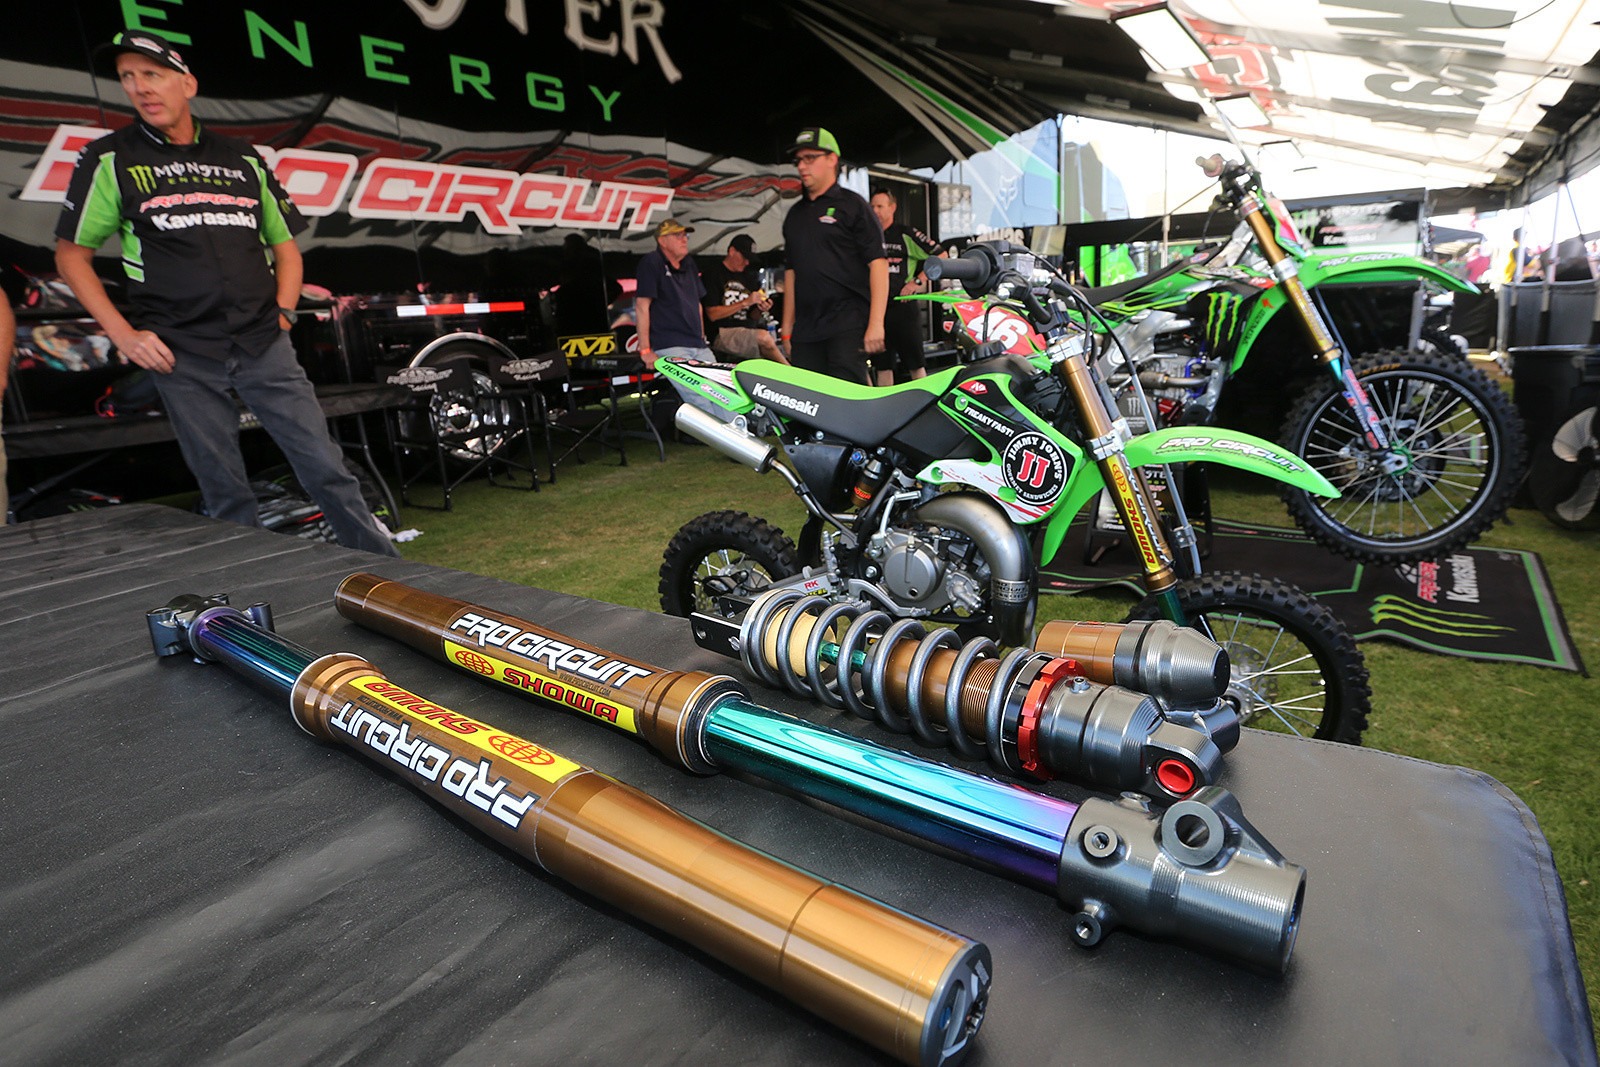 Showa A kit suspension for 65cc bikes? Yep, Bones was showing it off in the Monster Energy Pro Circuit Kawasaki tent.